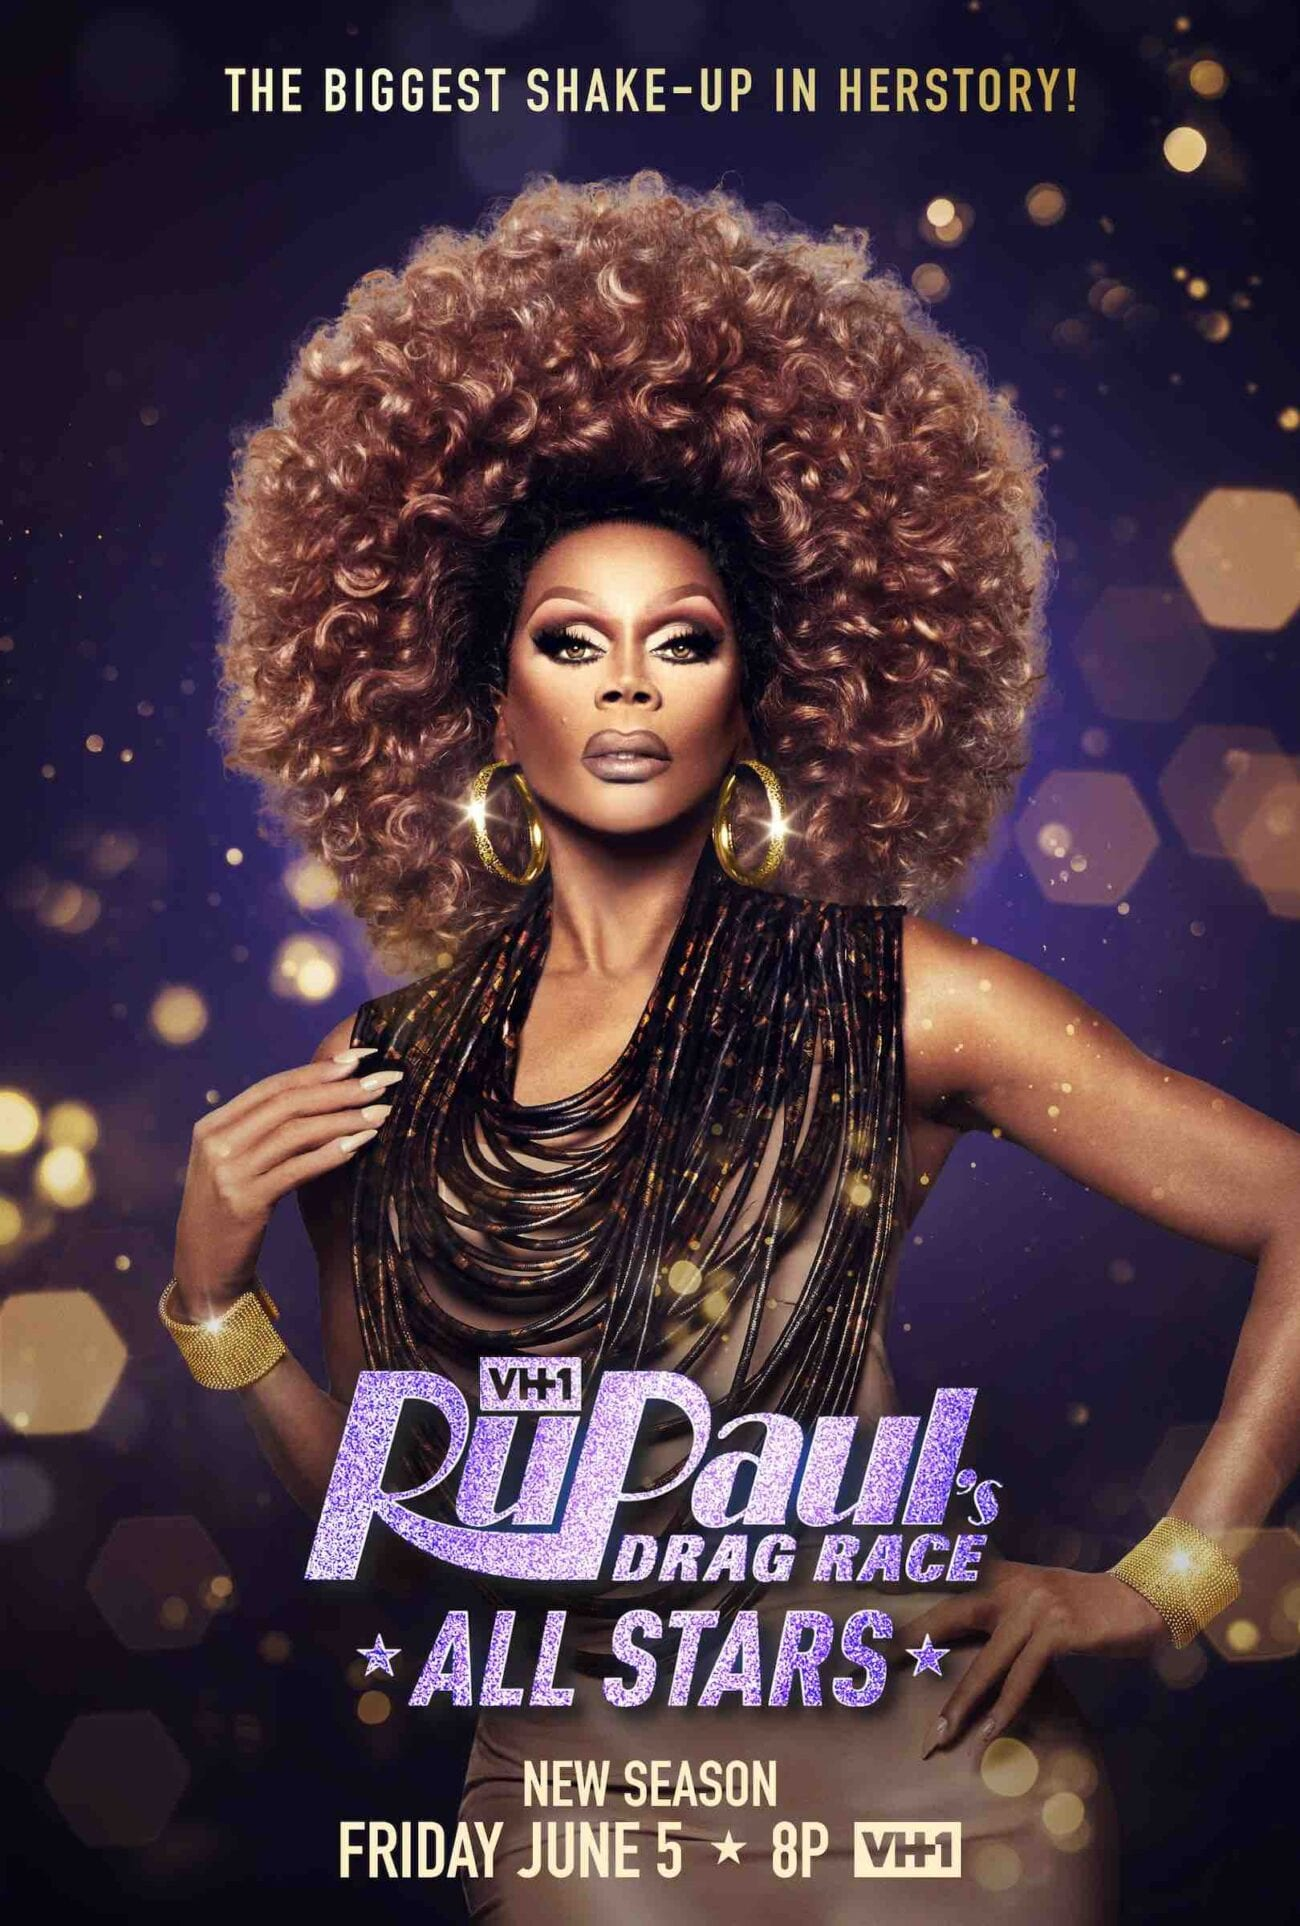 'Rupaul's Drag Race All Stars' season 5 is premiering on VH1 on June 5th, and we cannot wait to see redemption for these queens.